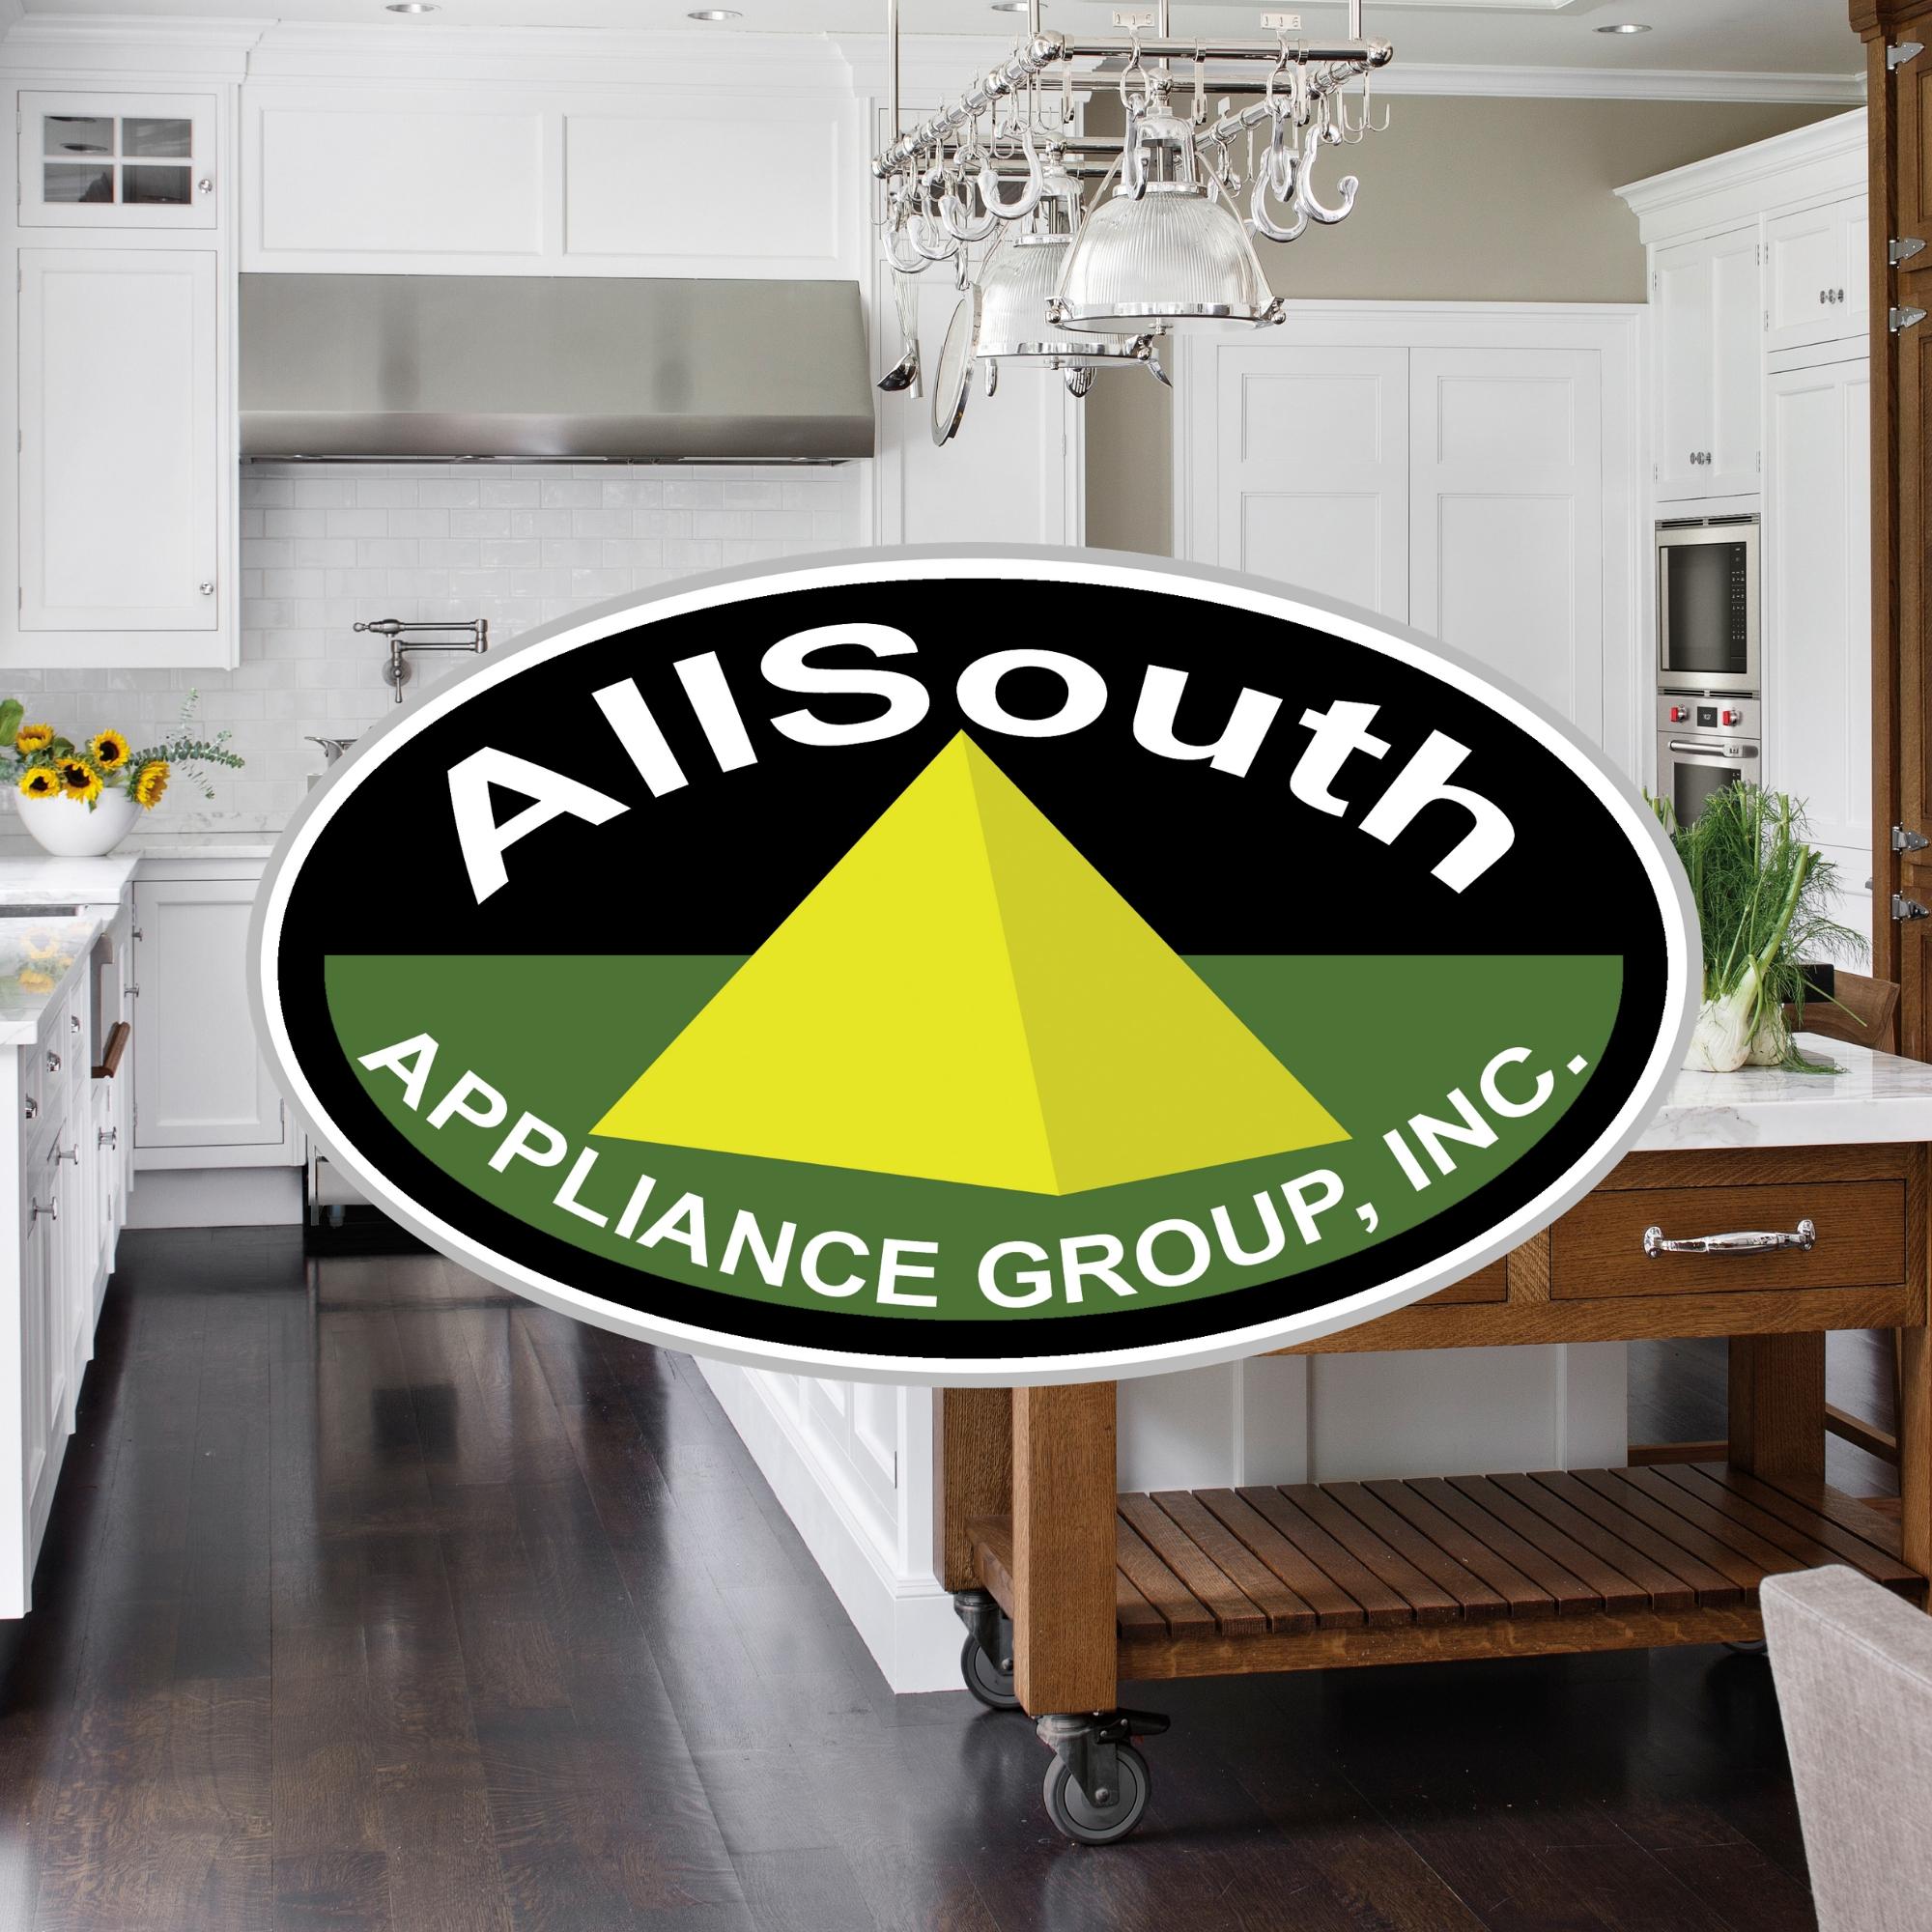 AllSouth Appliance Group | Leah McIntyre Business Logo